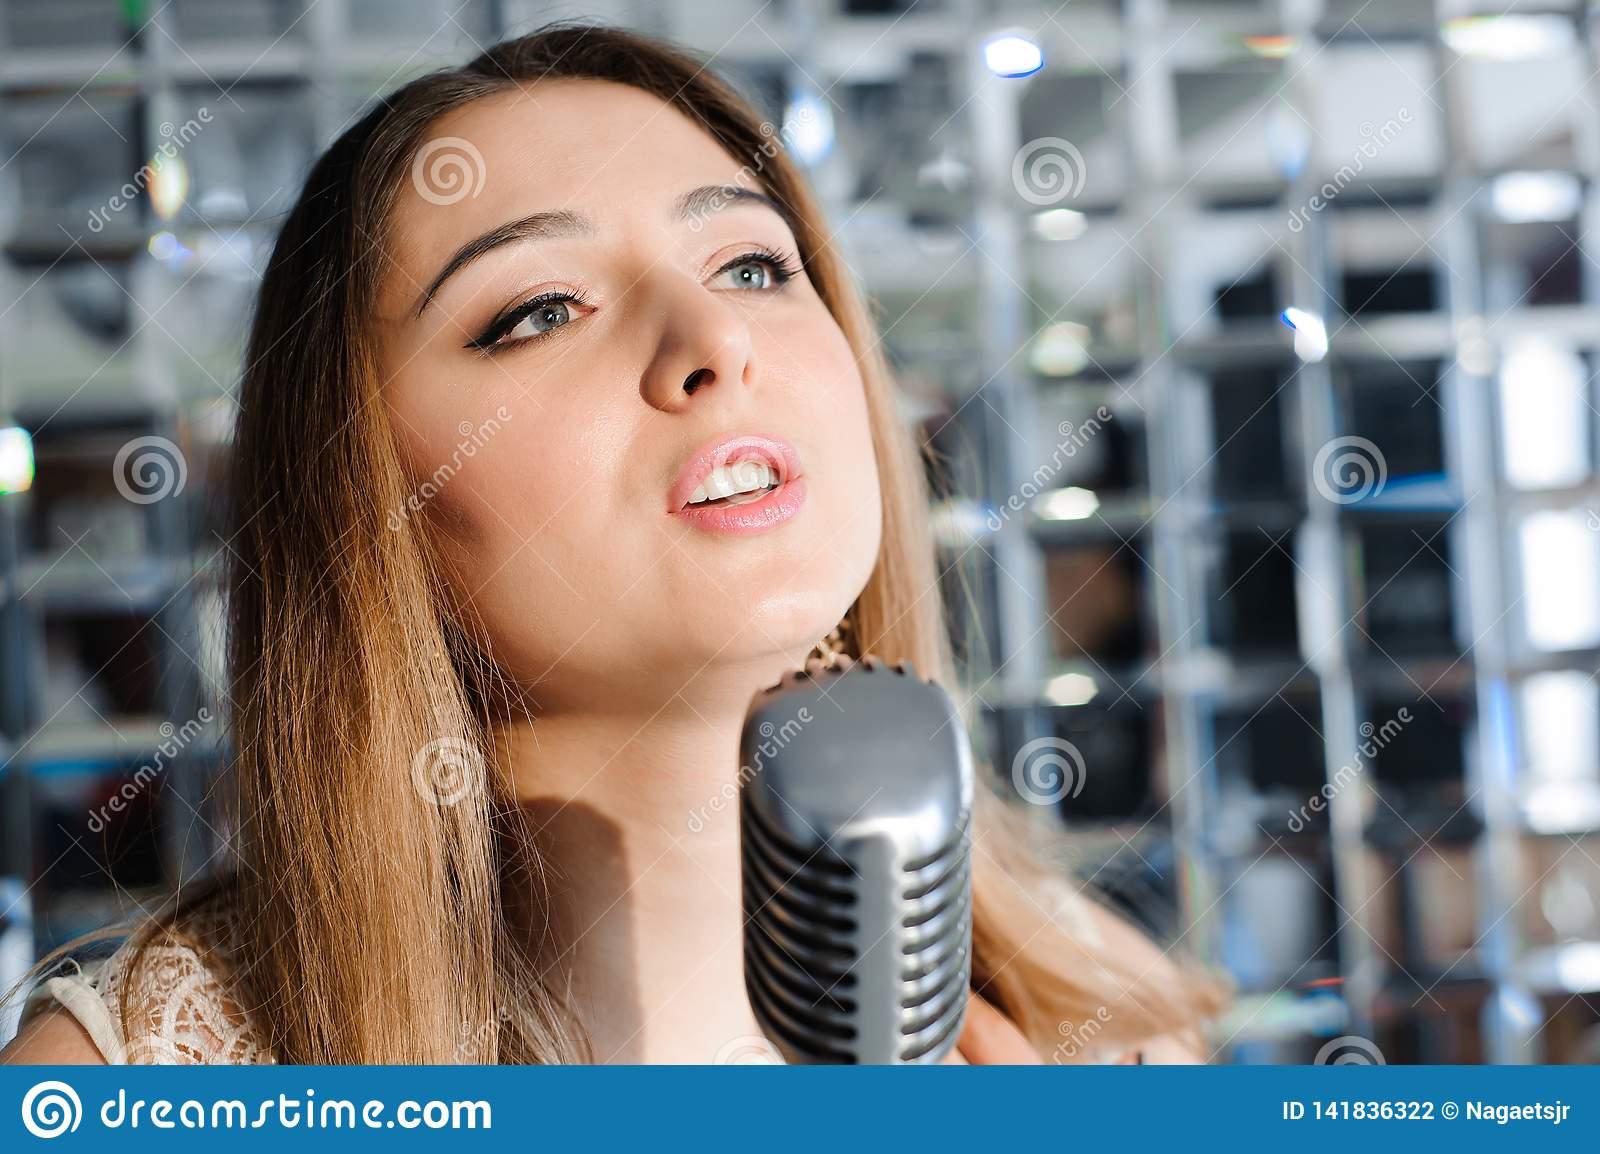 Singer in front of a microphone. beautiful woman singing on the stage next to the microphone.